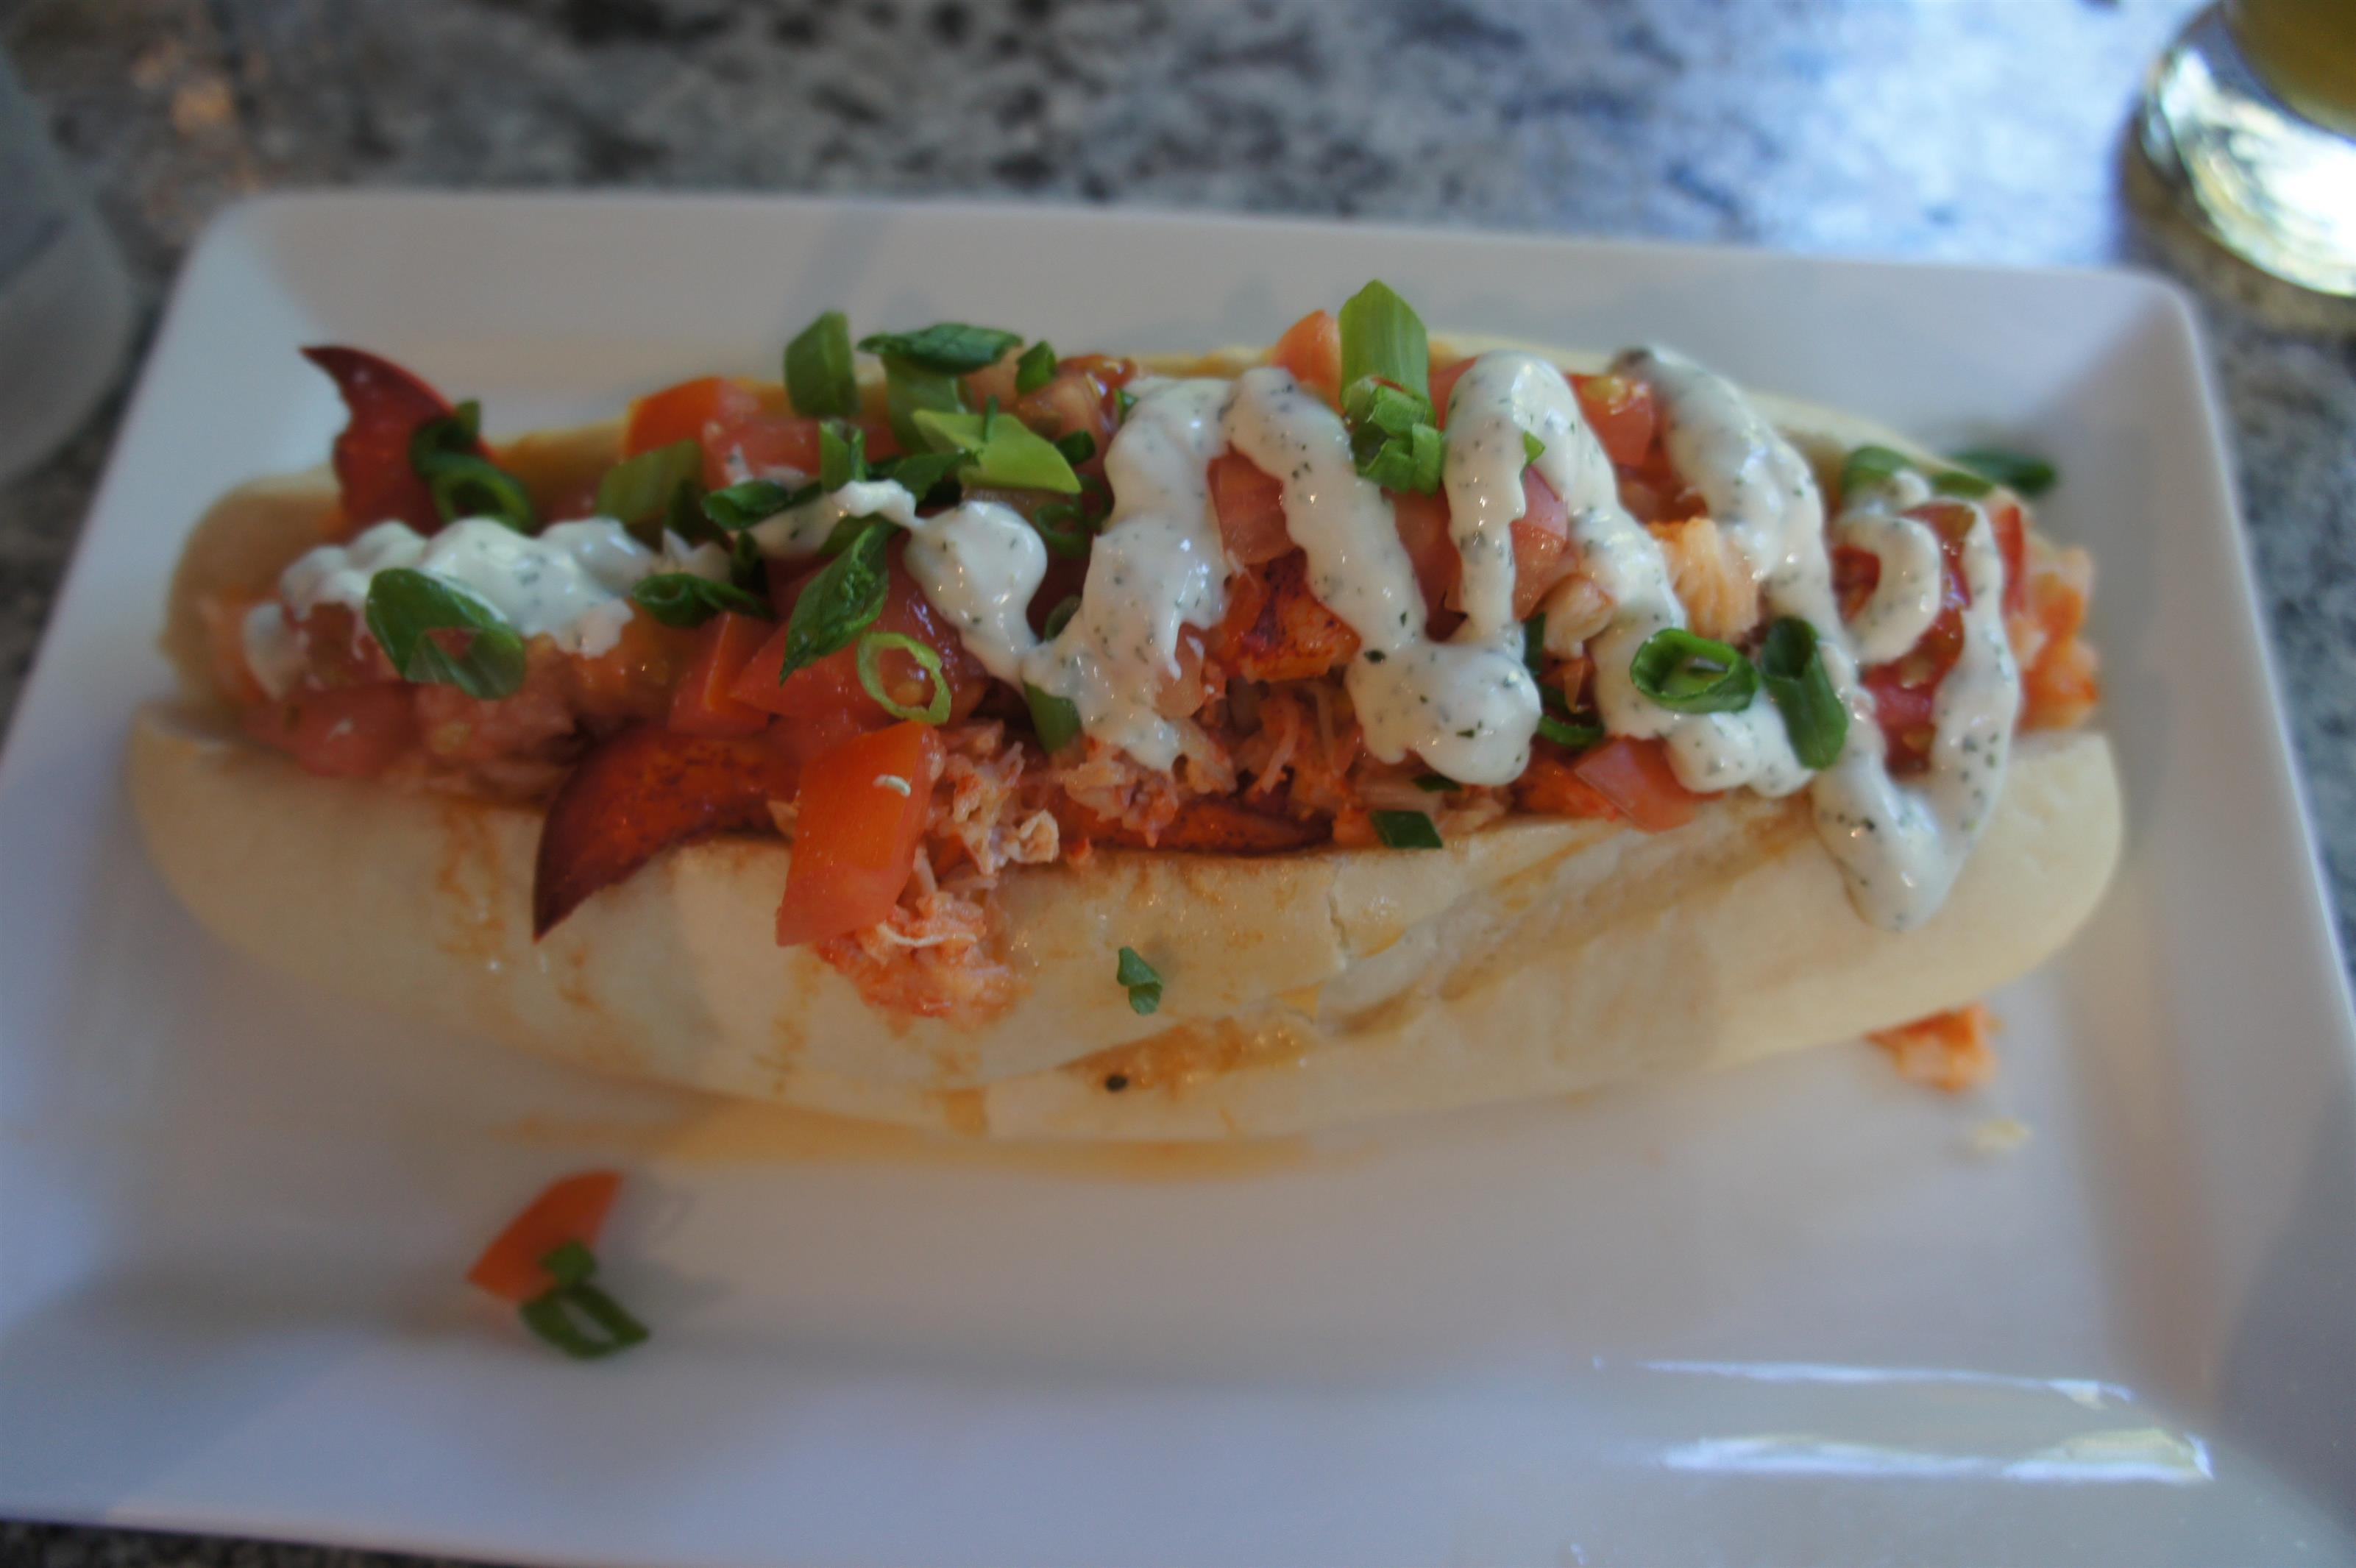 Shrimp and lobster meat tossed with green onion, tomato, bell peppers and dill mayonnaise on a hoagie roll.